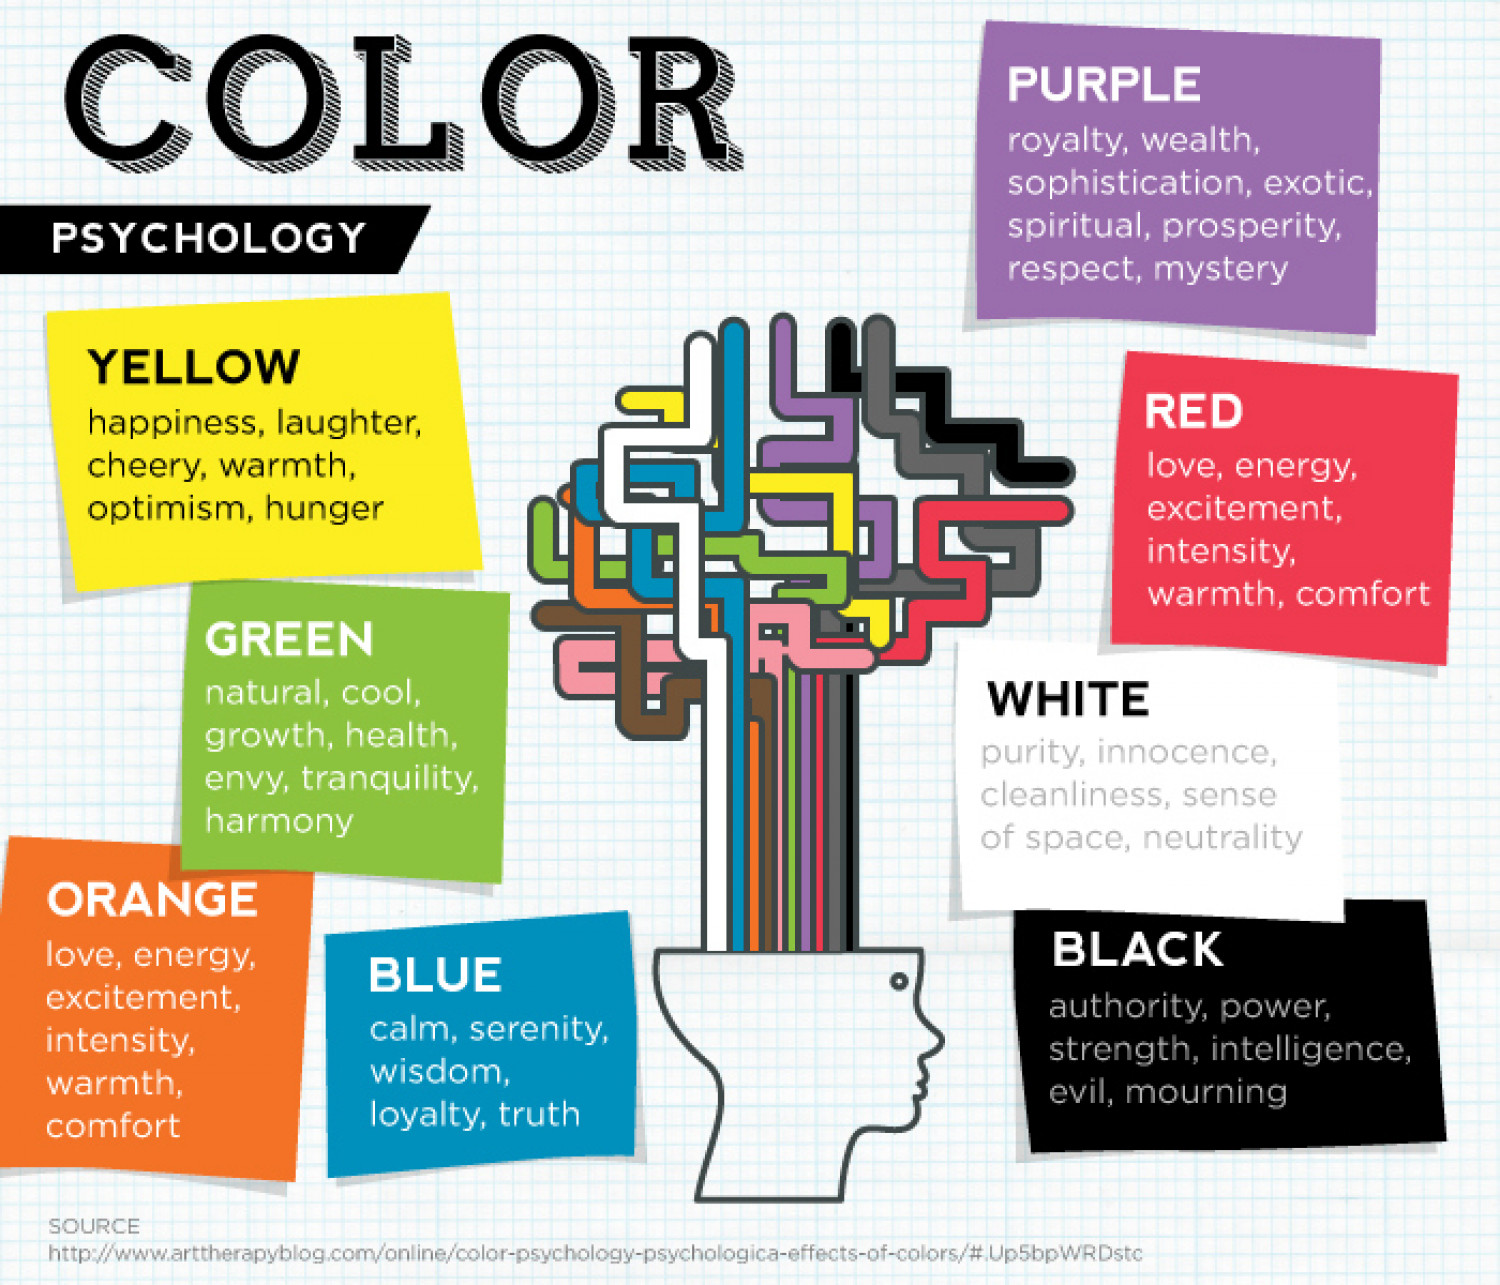 Anatomy of the Perfect Office - Color Psychology Infographic